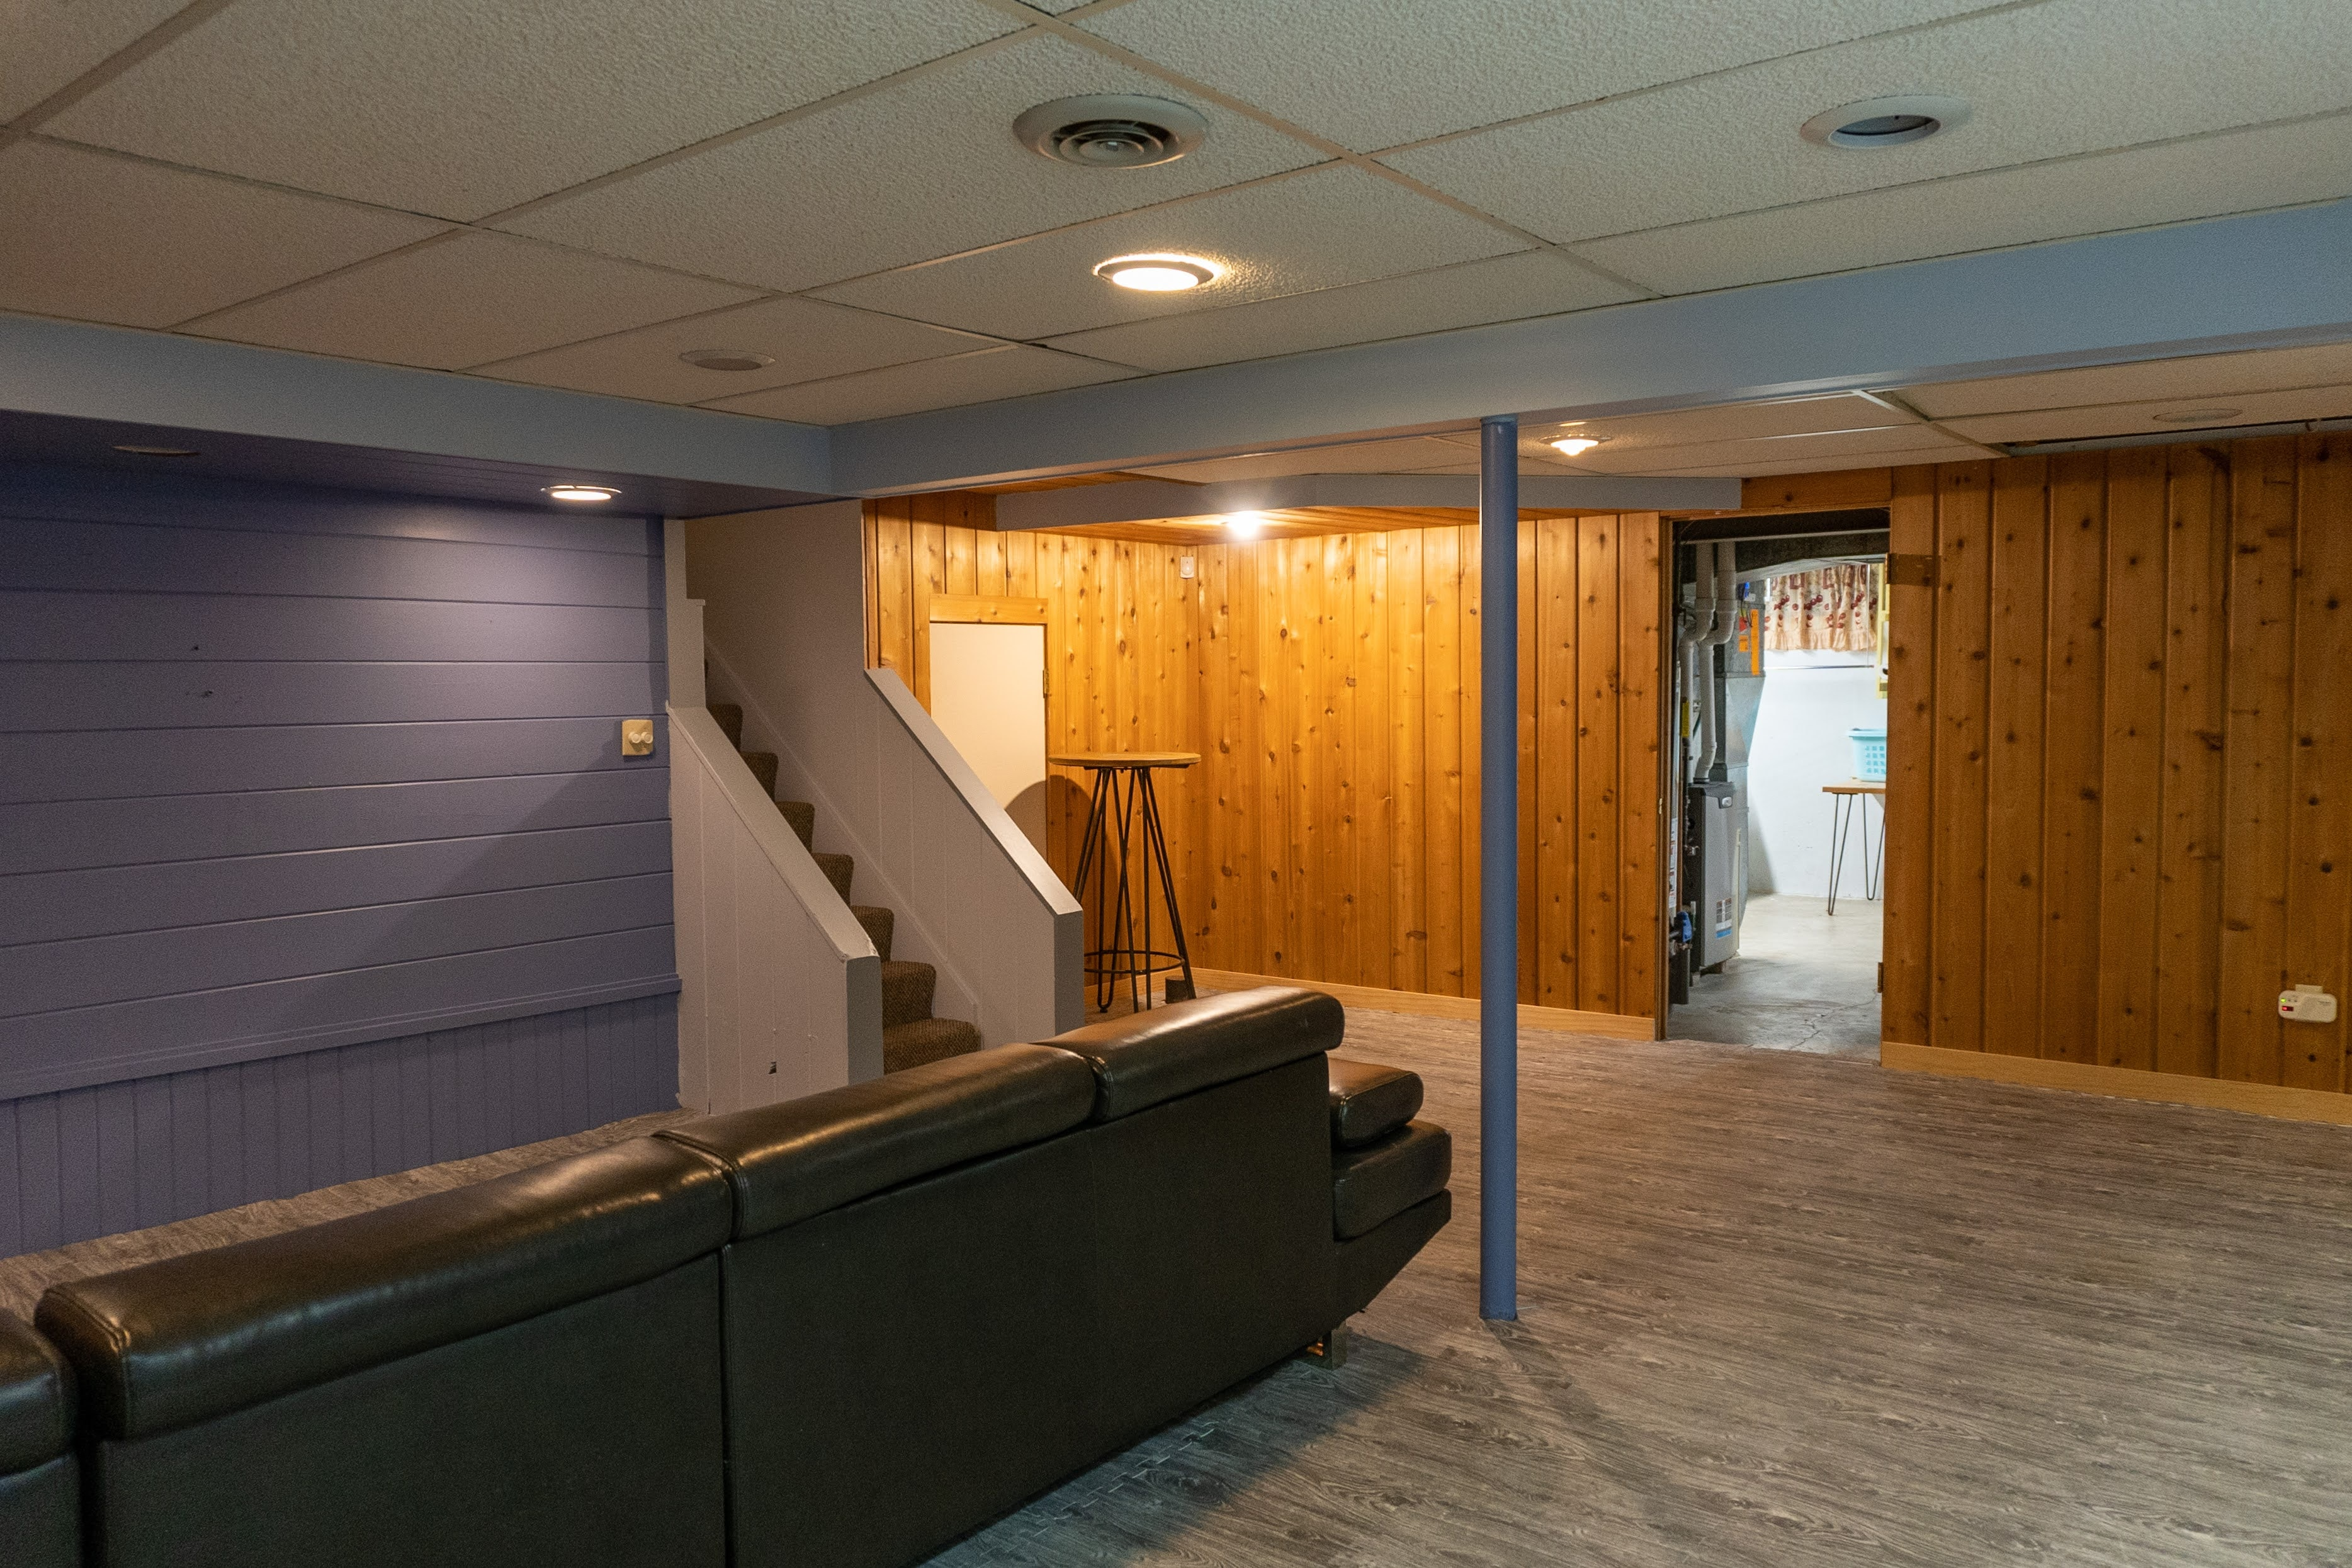 Find the right basement ventilation system for your home.